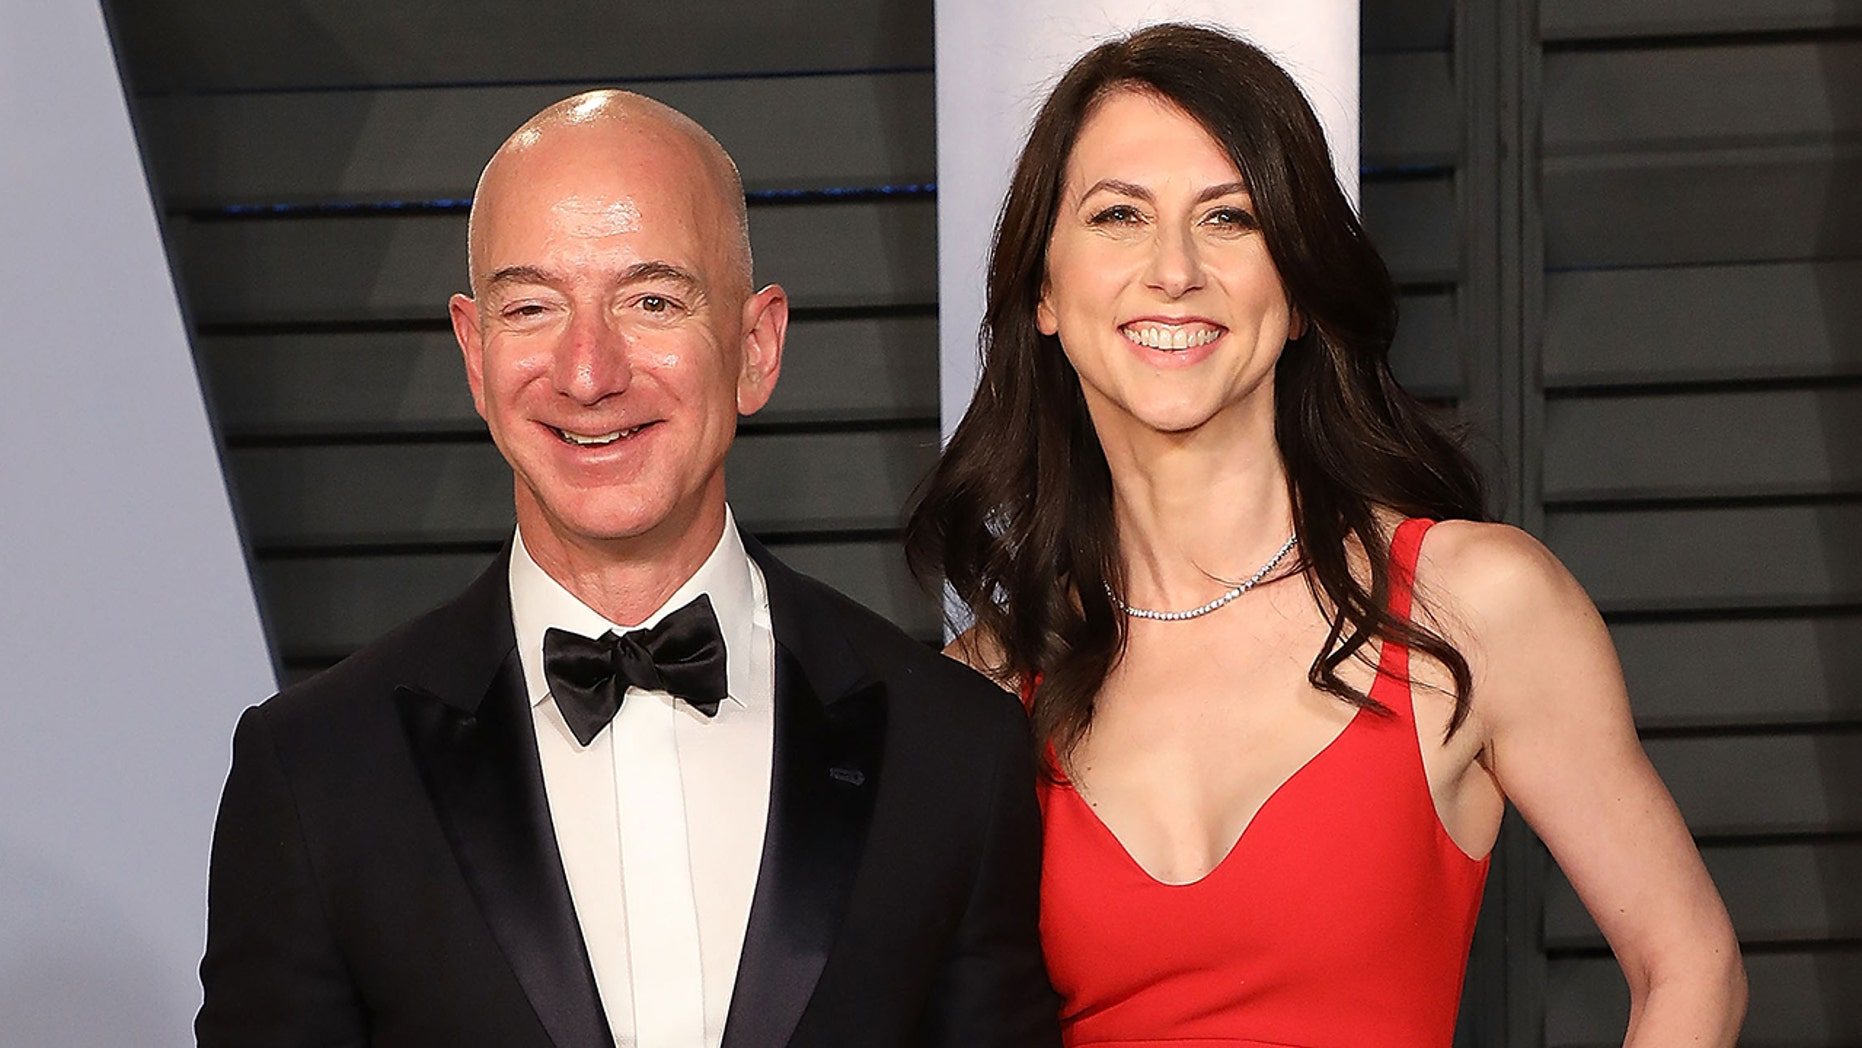 Amazon's Jeff Bezos finalizes divorce with wife MacKenzie